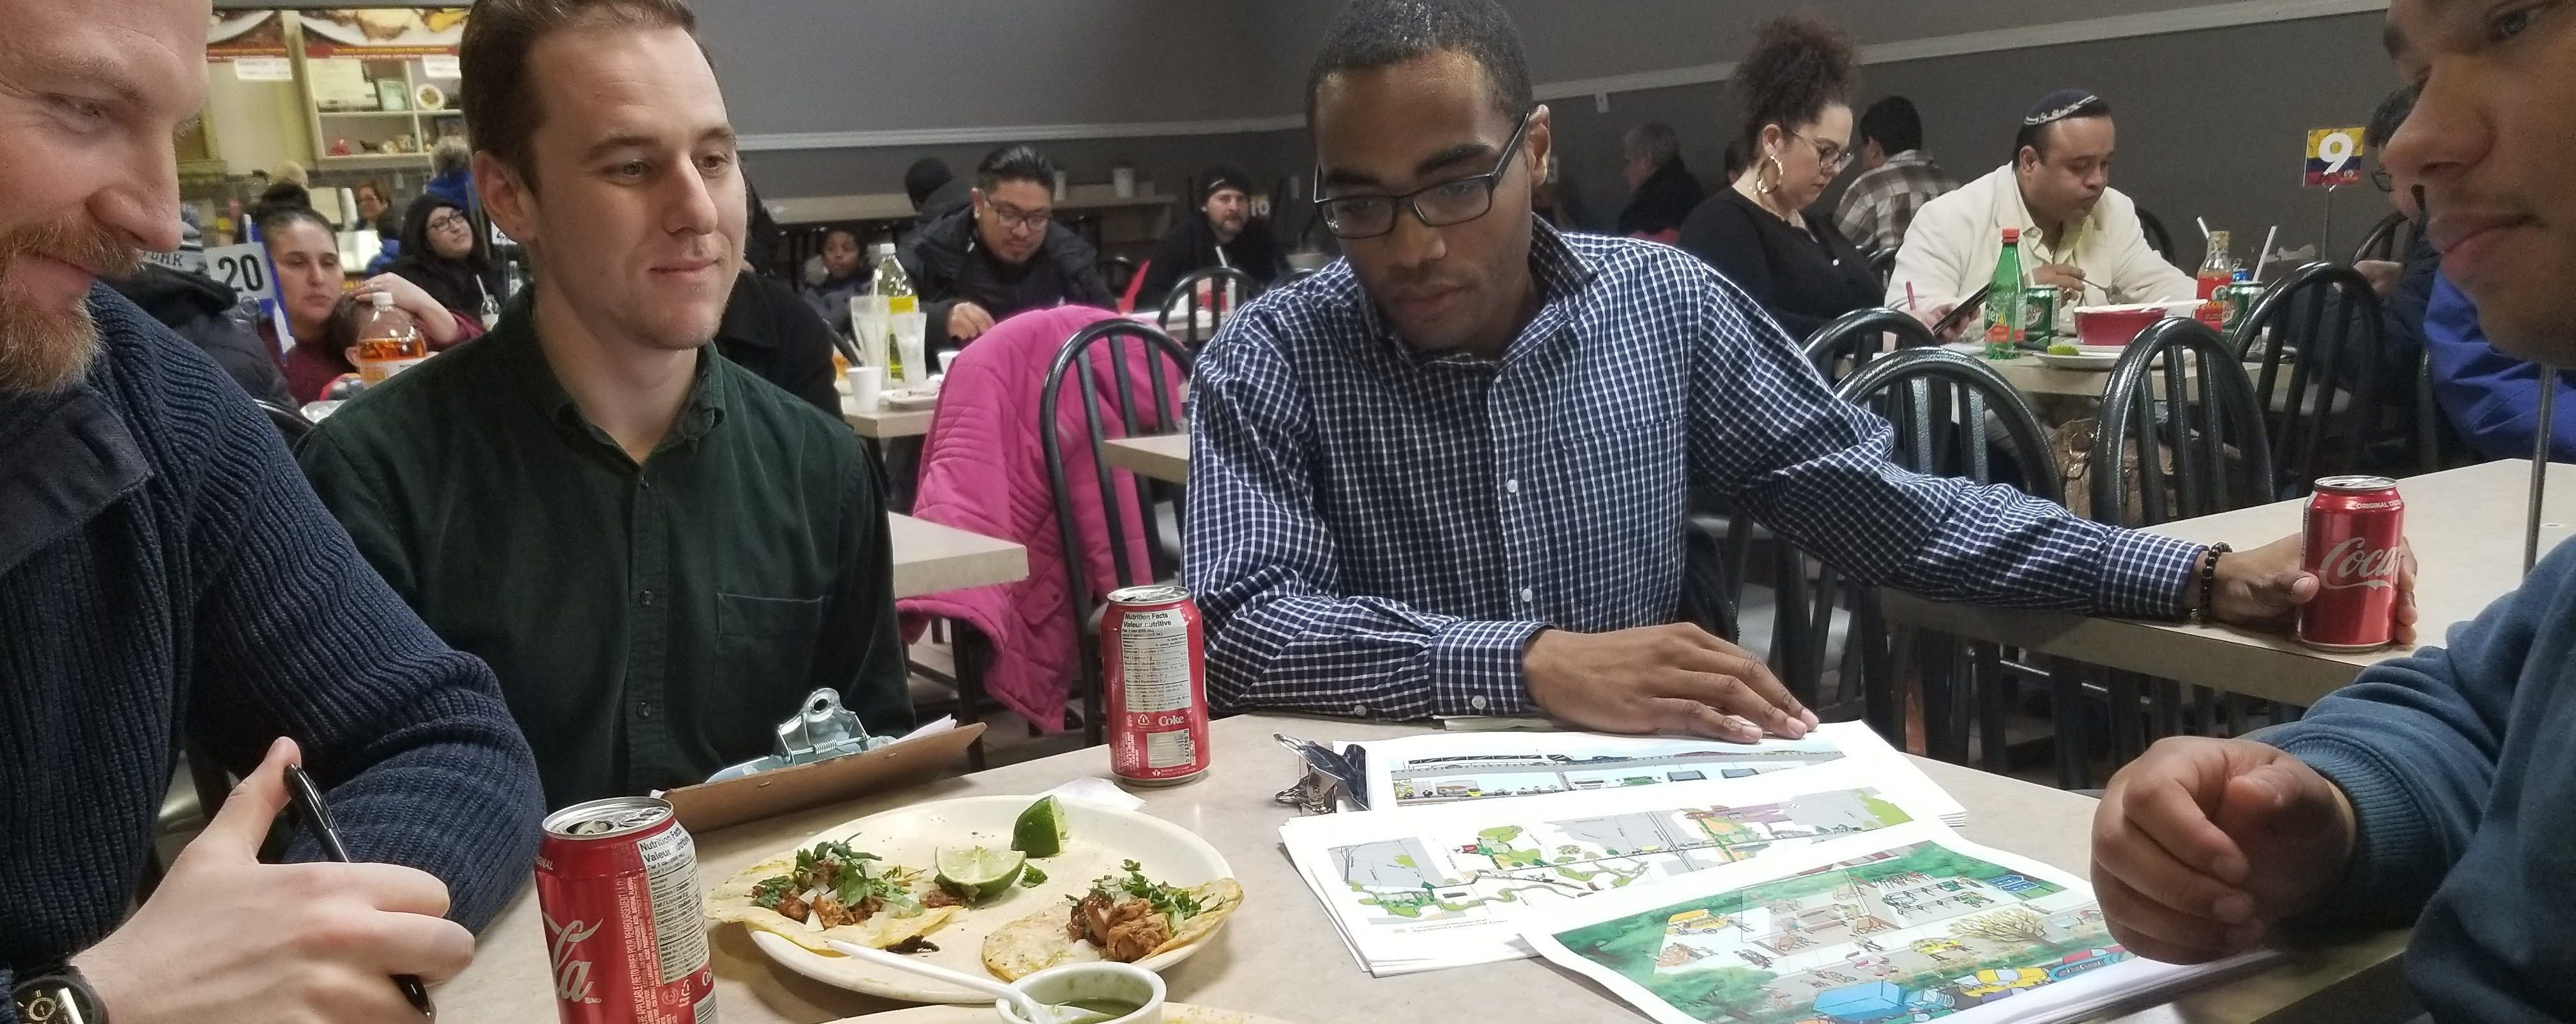 Discussing the benefits of the Mobility Greenway over a meal at Plaza Latina